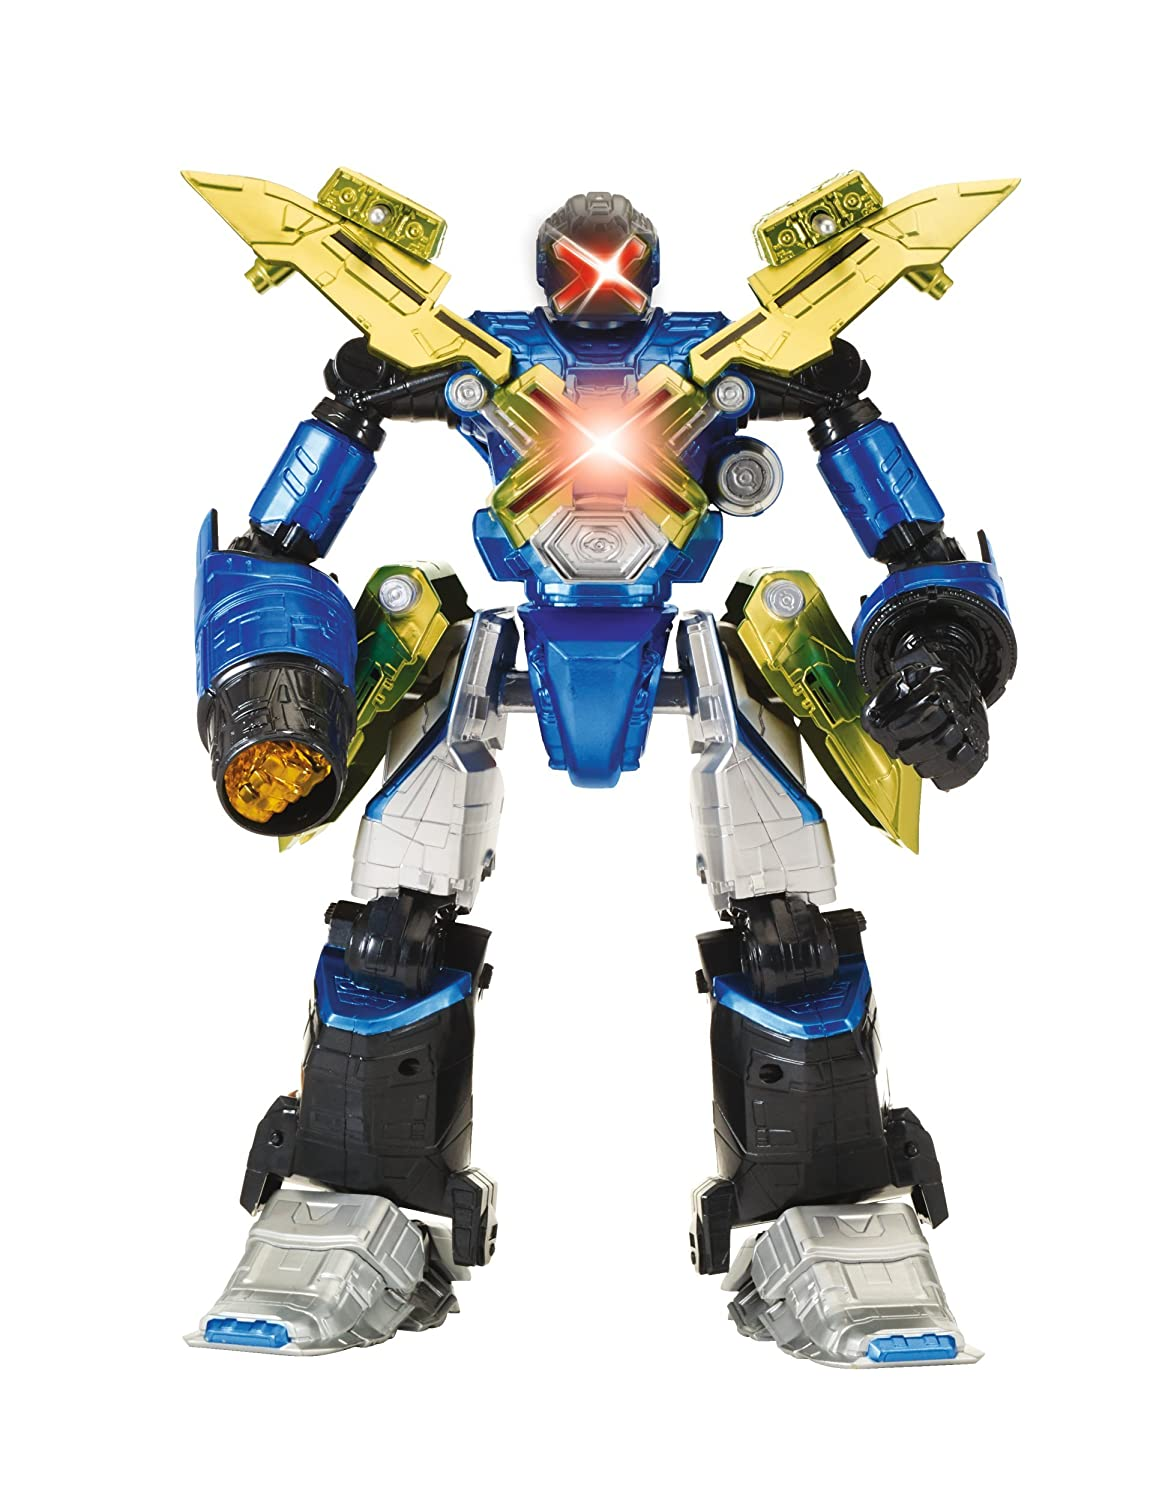 Mech-X4 12 Technopathy Robot /& Mech-Link Band Feature Figure Bandai America Incorporated 37286